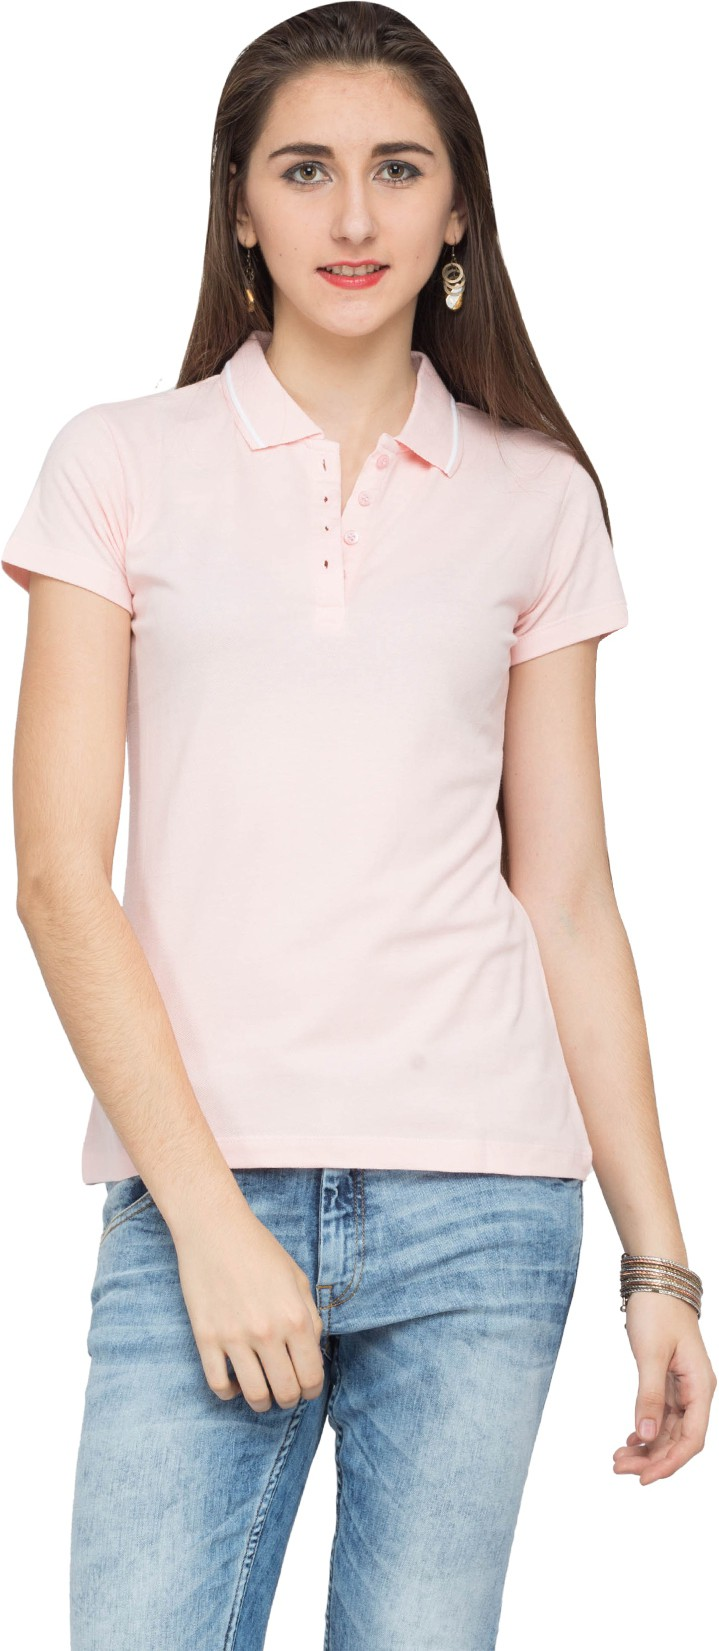 Alibi Solid Womens Polo Neck Pink T-Shirt